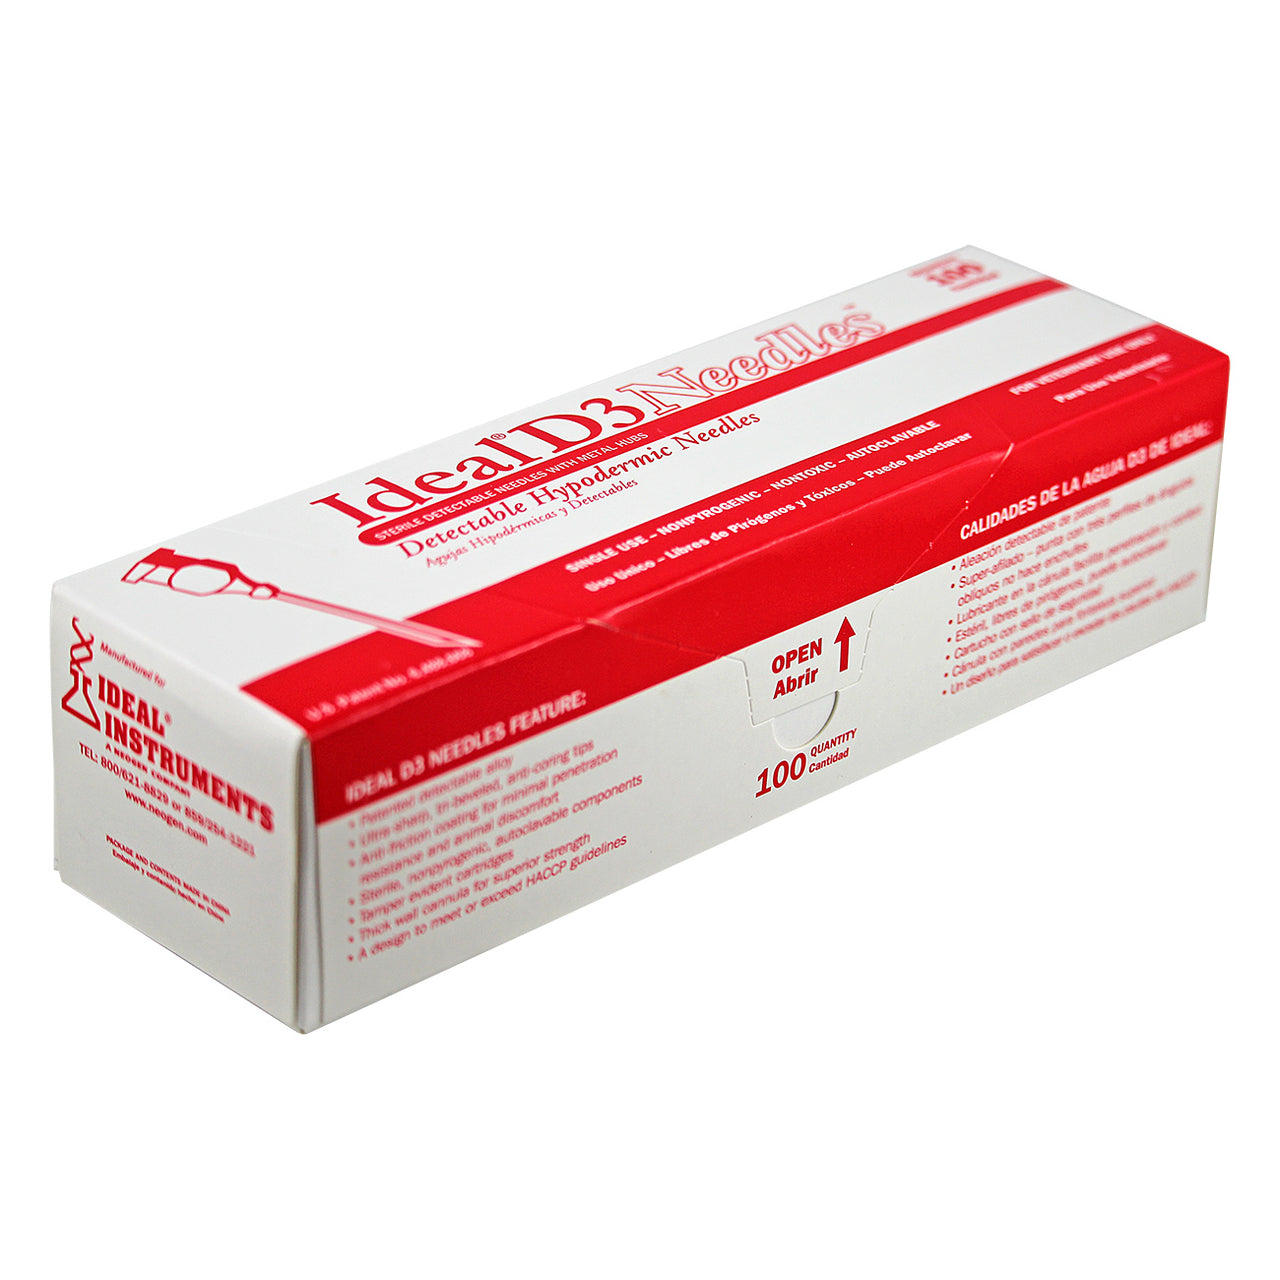 Ideal D3 detectable brass hub needle (100 per box) 16 X 3/4